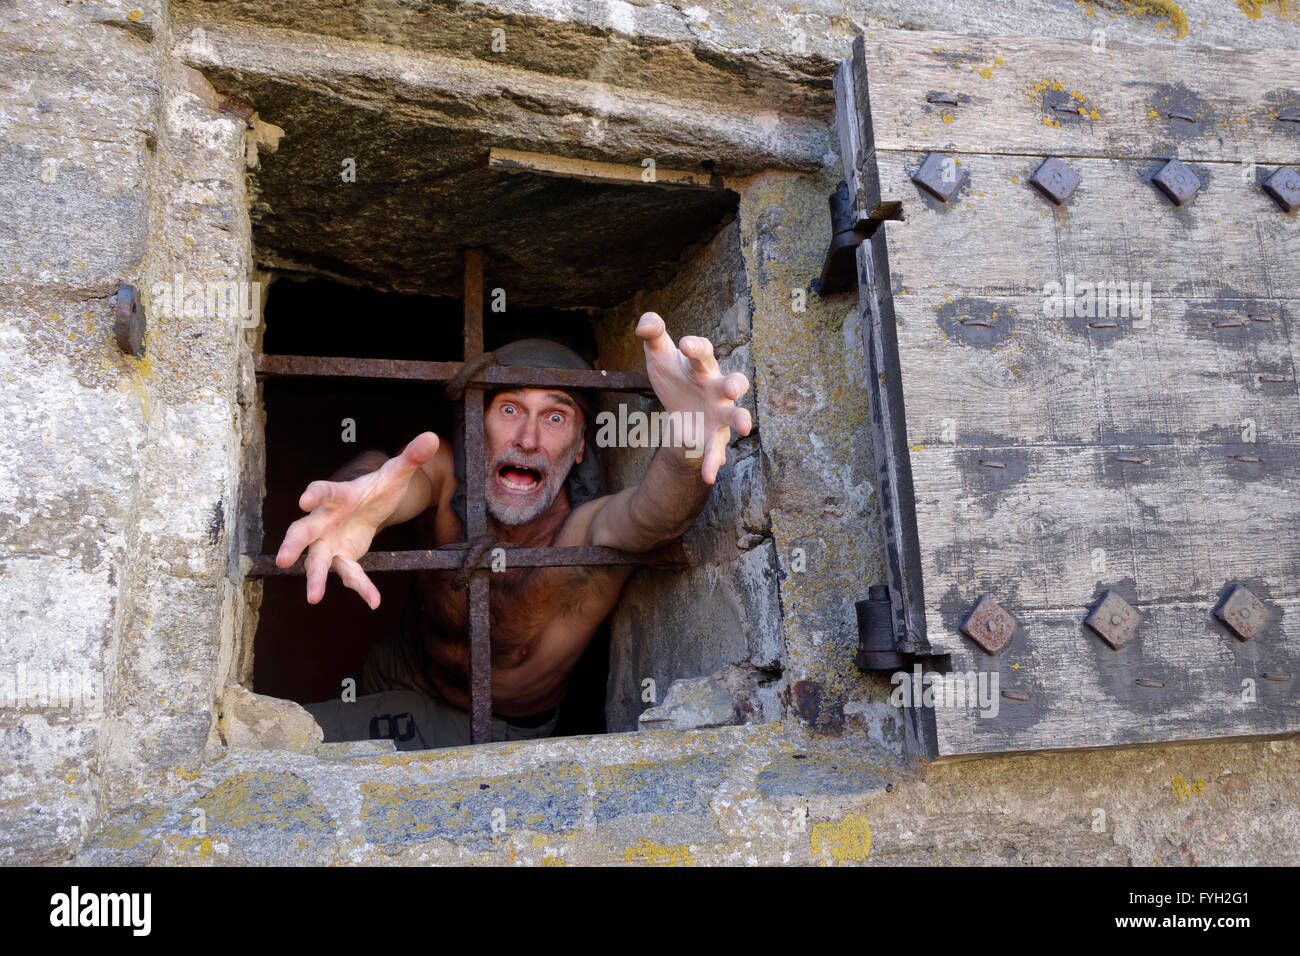 A man behind the window bars acts and overdramatizes a desperate prisoner. - Stock Image